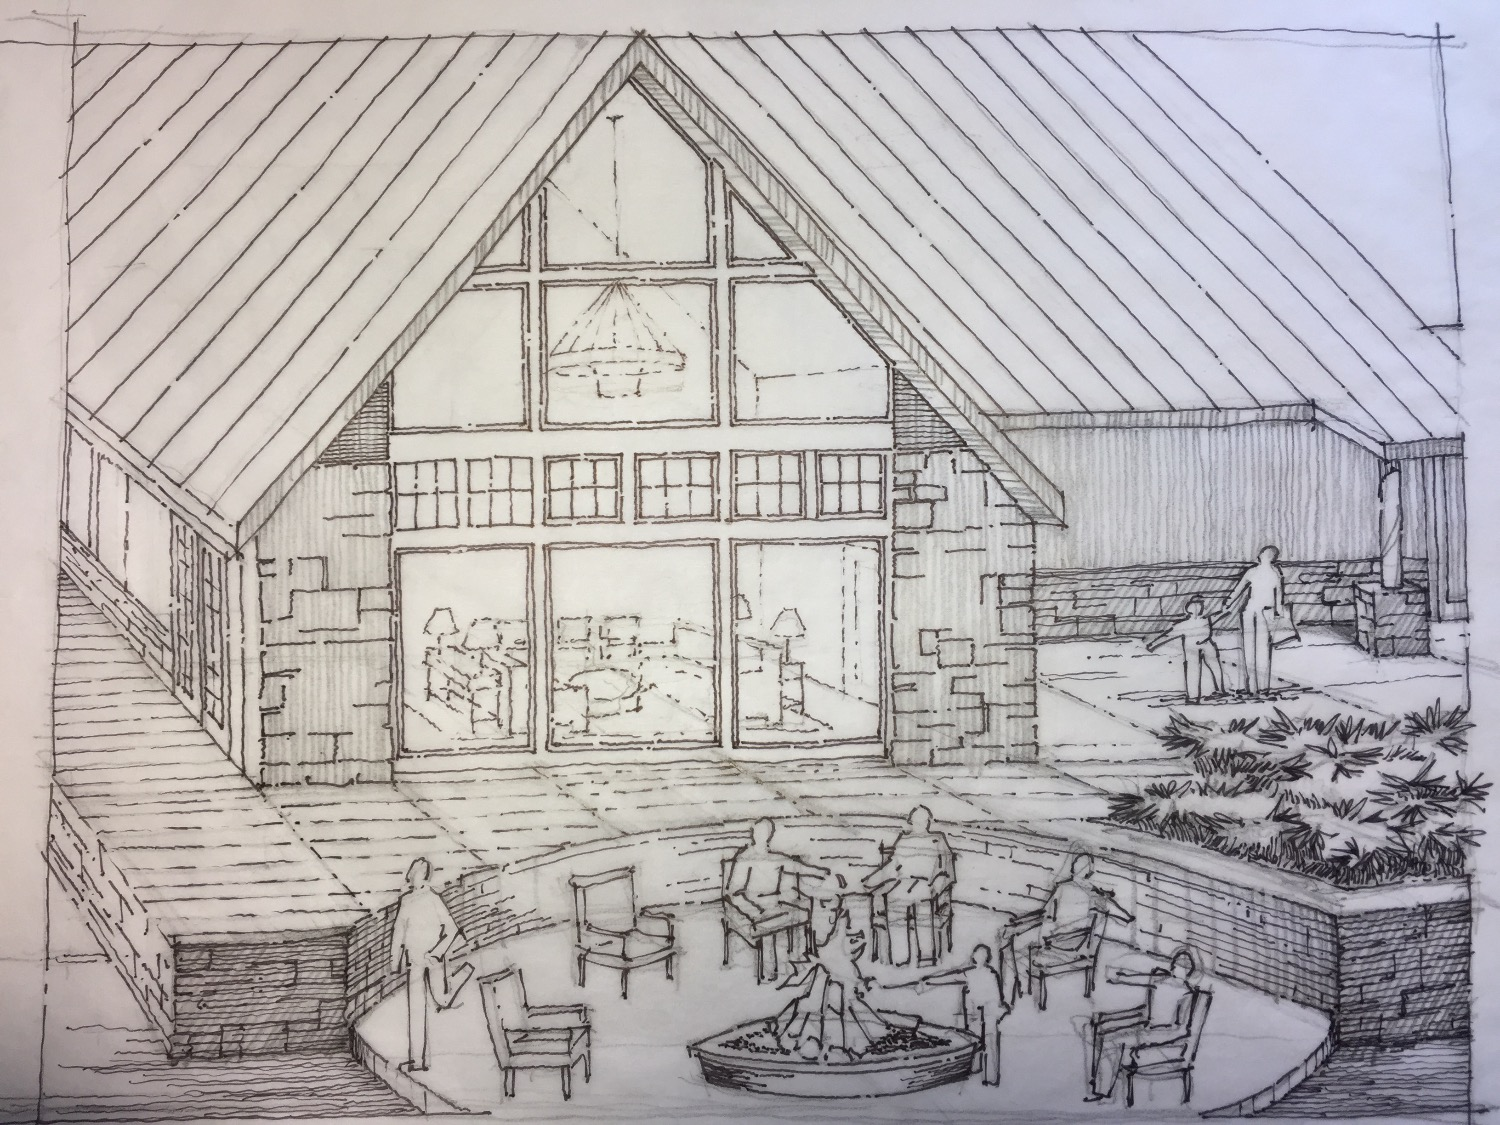 Sundance Ridge Patio Sketch